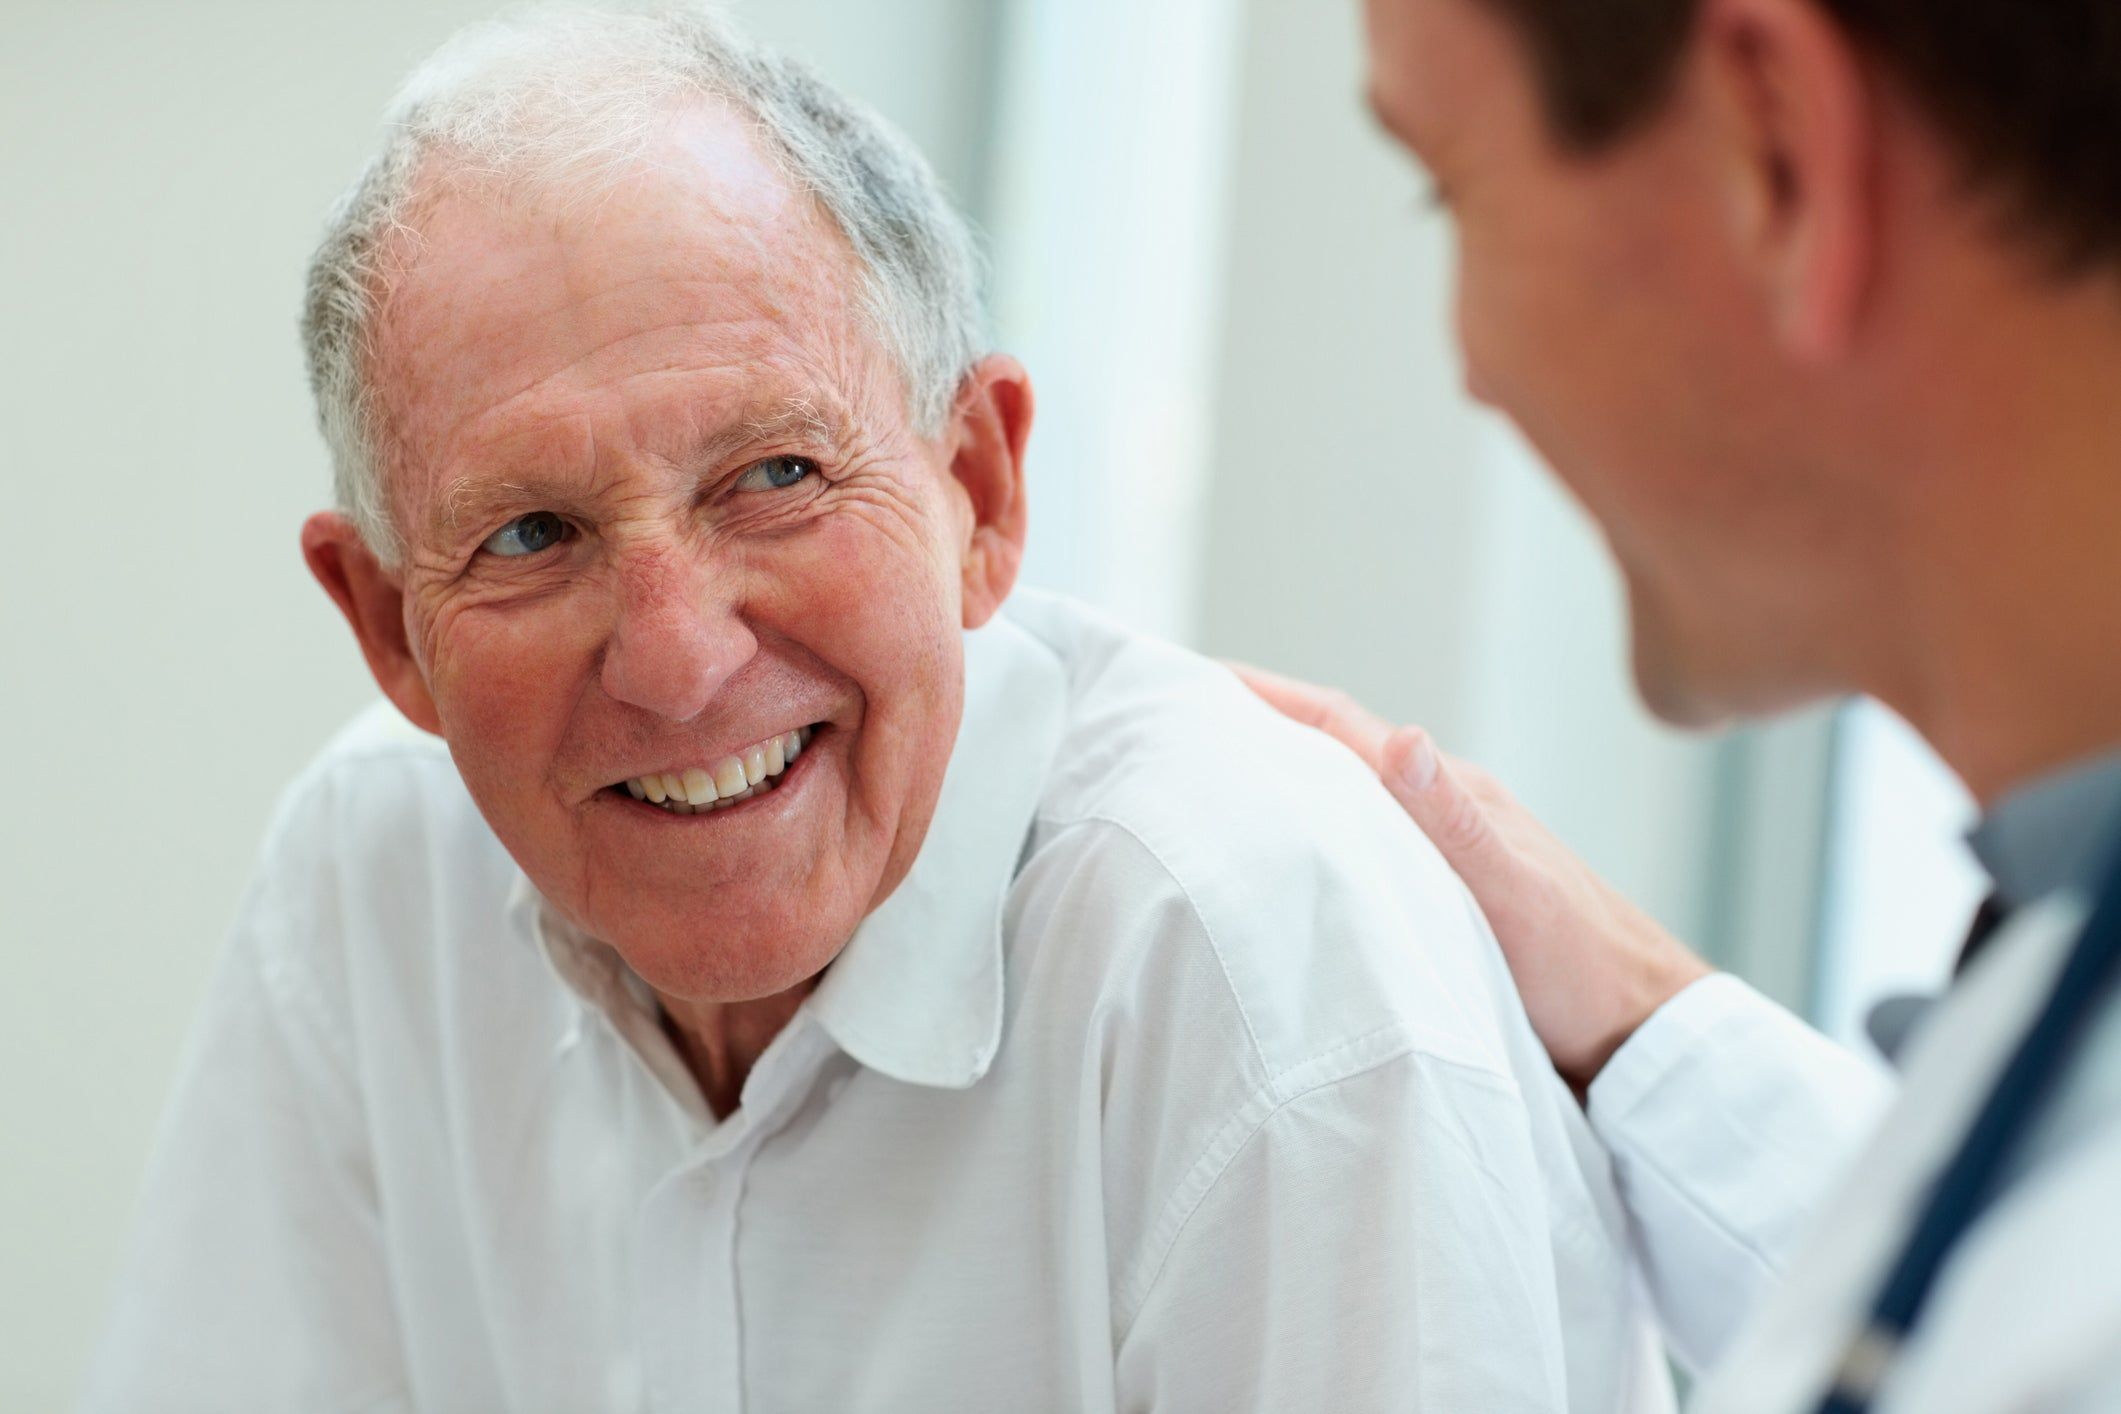 Unhappy with the Medicare Advantage plan you chose? The